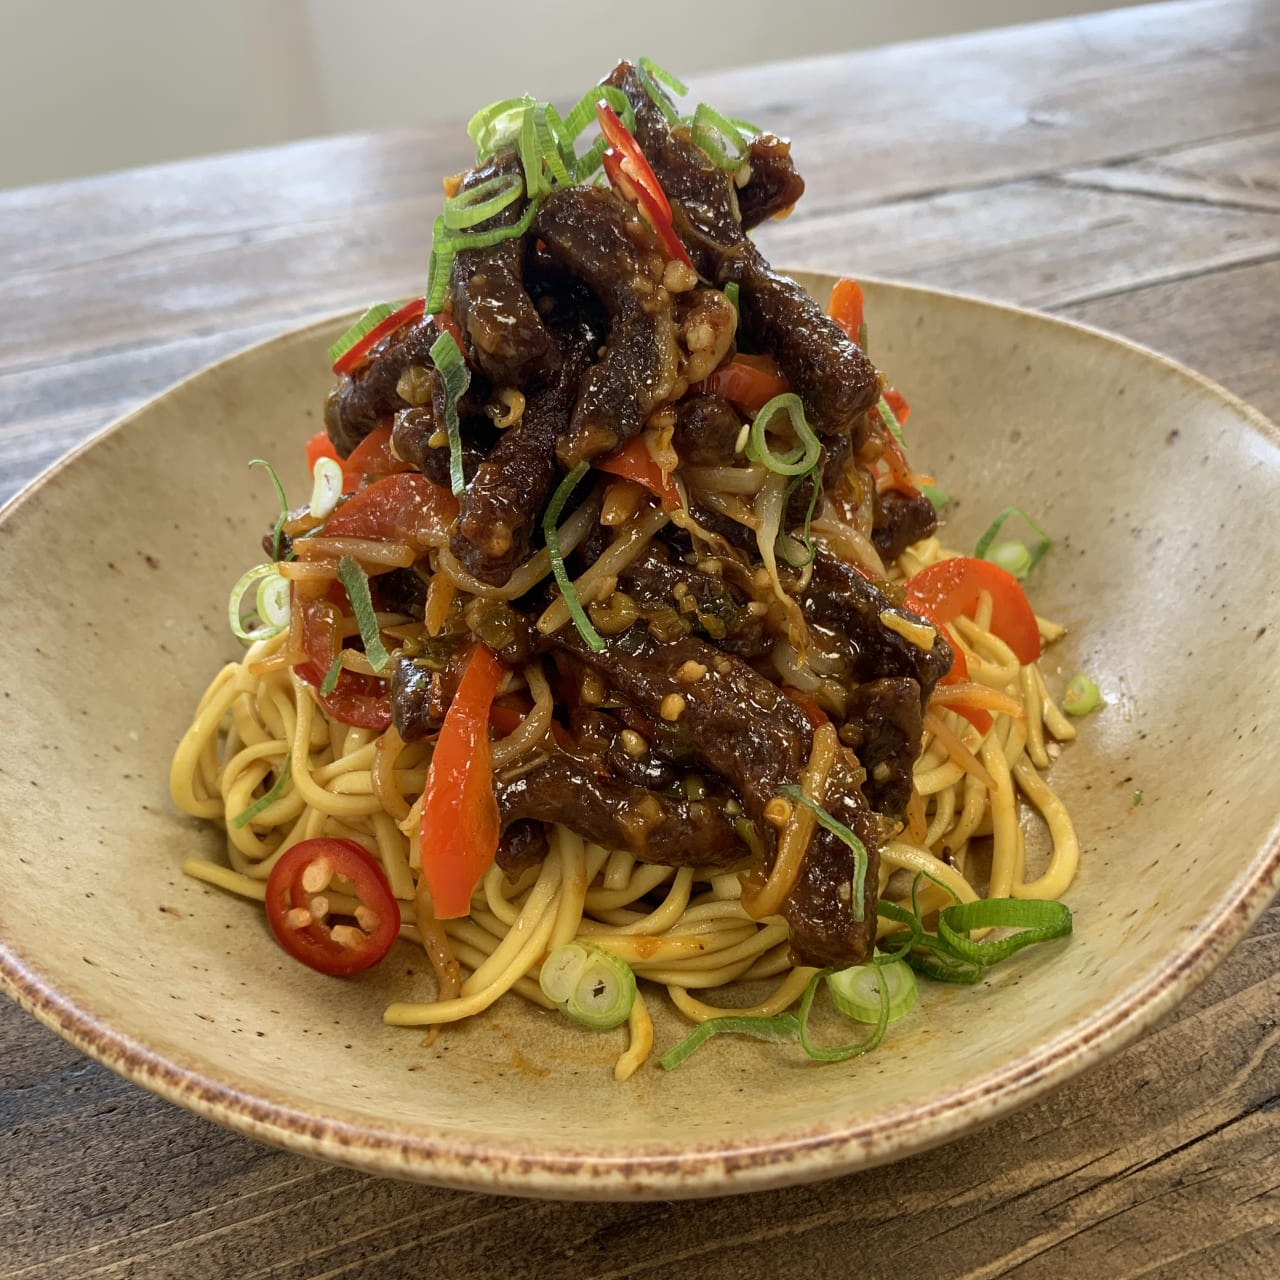 Crispy Chilli Beef served with noodles